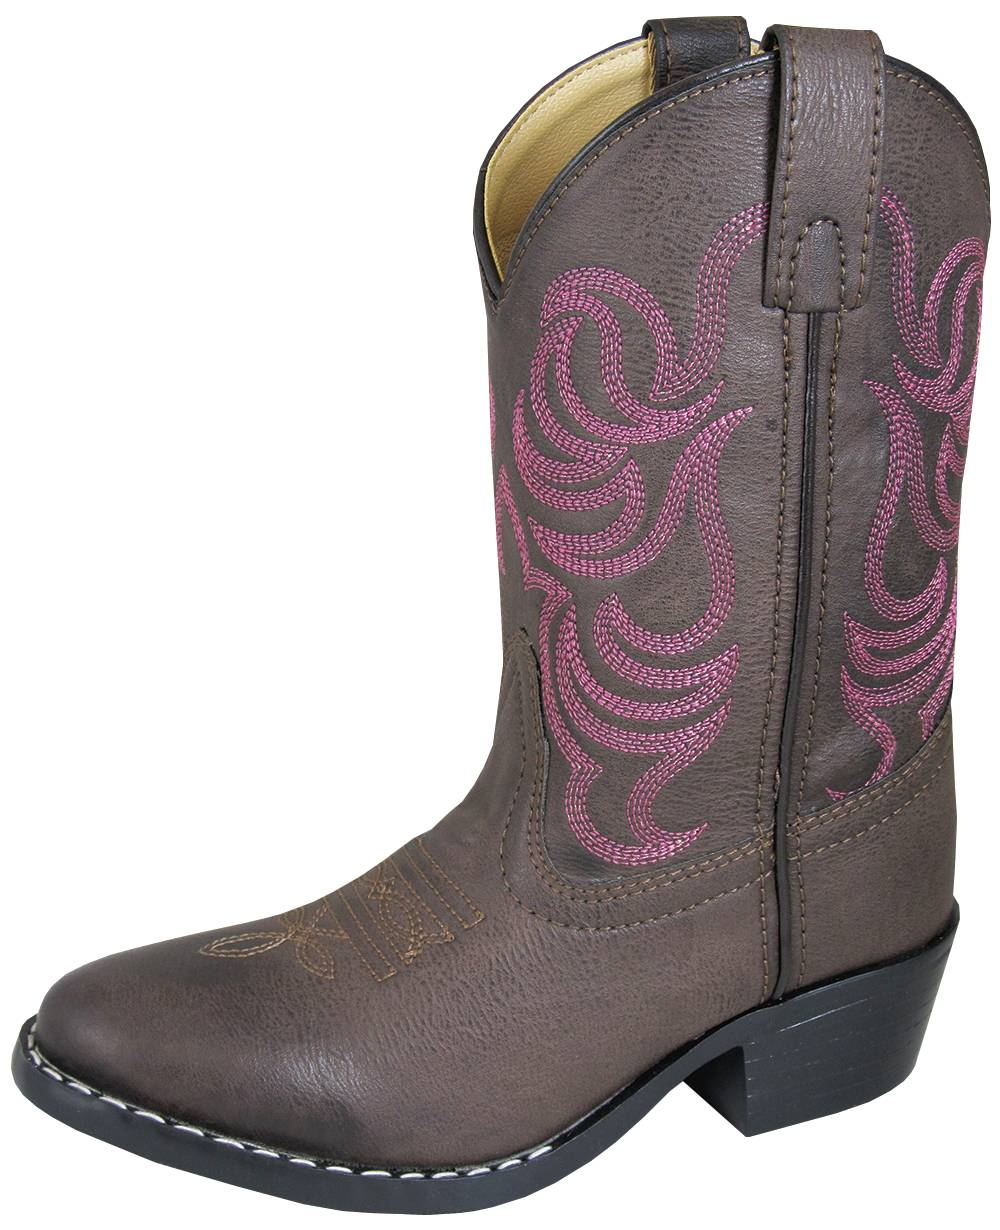 Smoky Mountain Childrens Monterey Boots - Brown/Pink